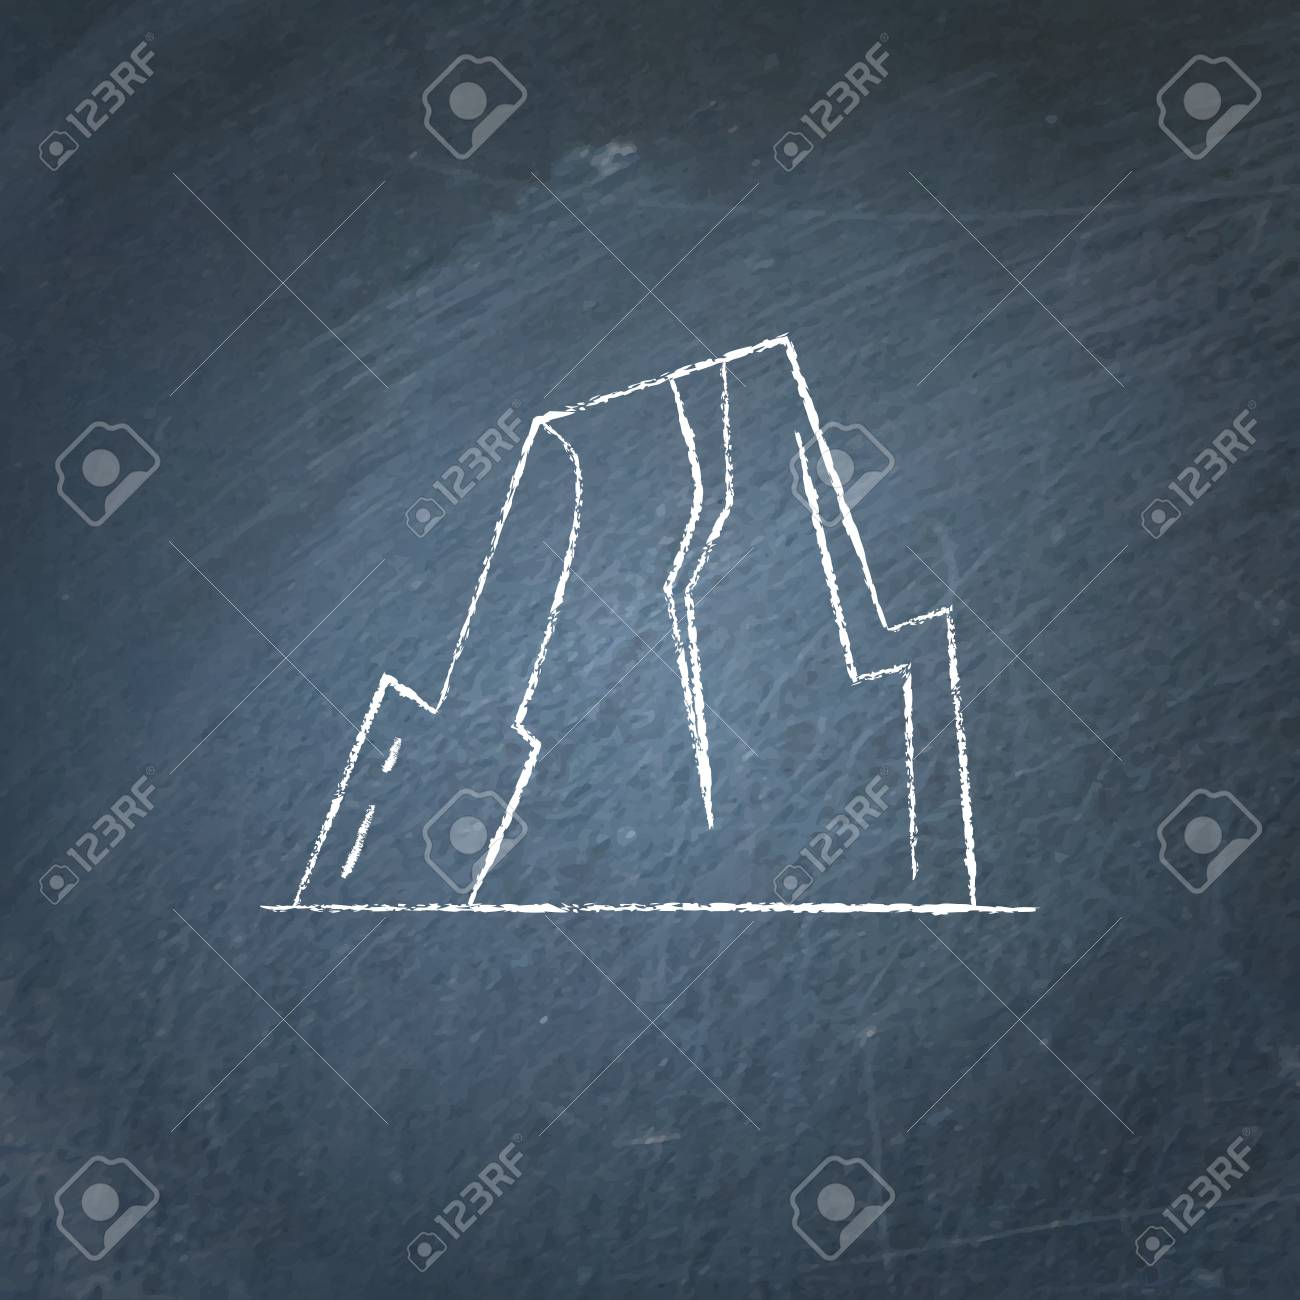 hight resolution of mountain with ledges icon on chalkboard rock with plateau symbol stock vector 90824273